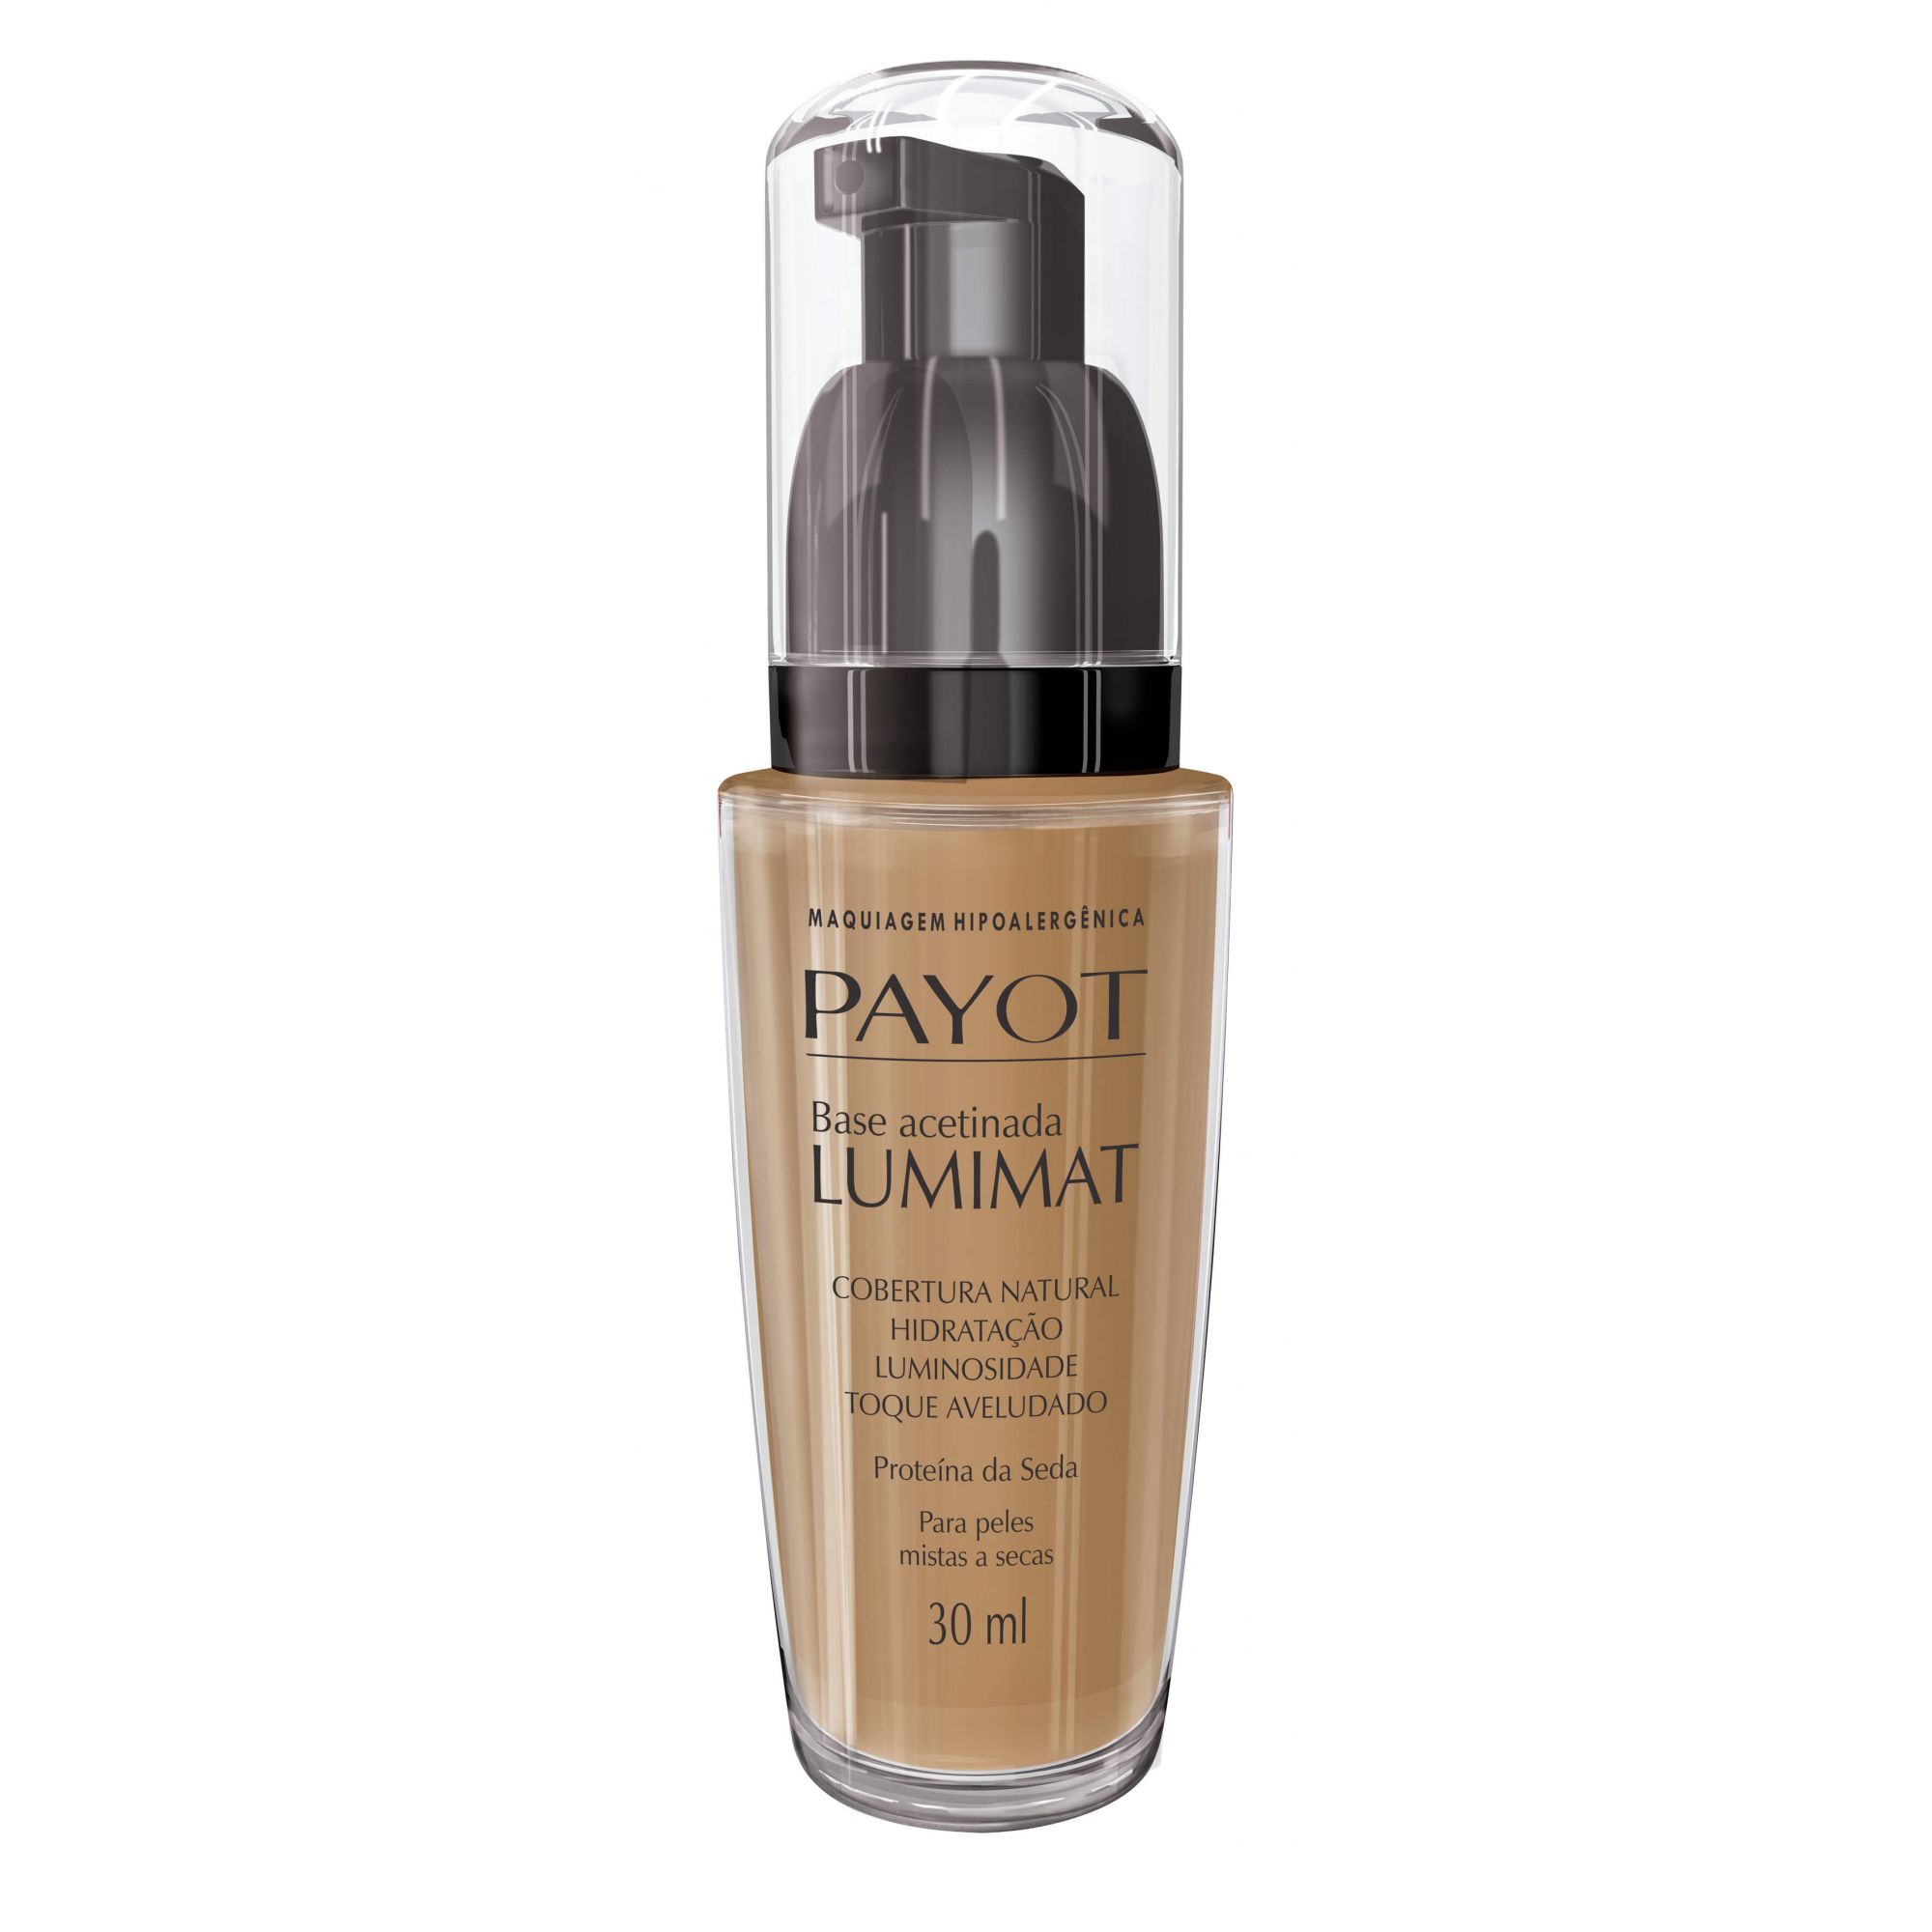 Luminant Base Líquida Payot Beige Doree - Base Líquida Acetinada 30ml